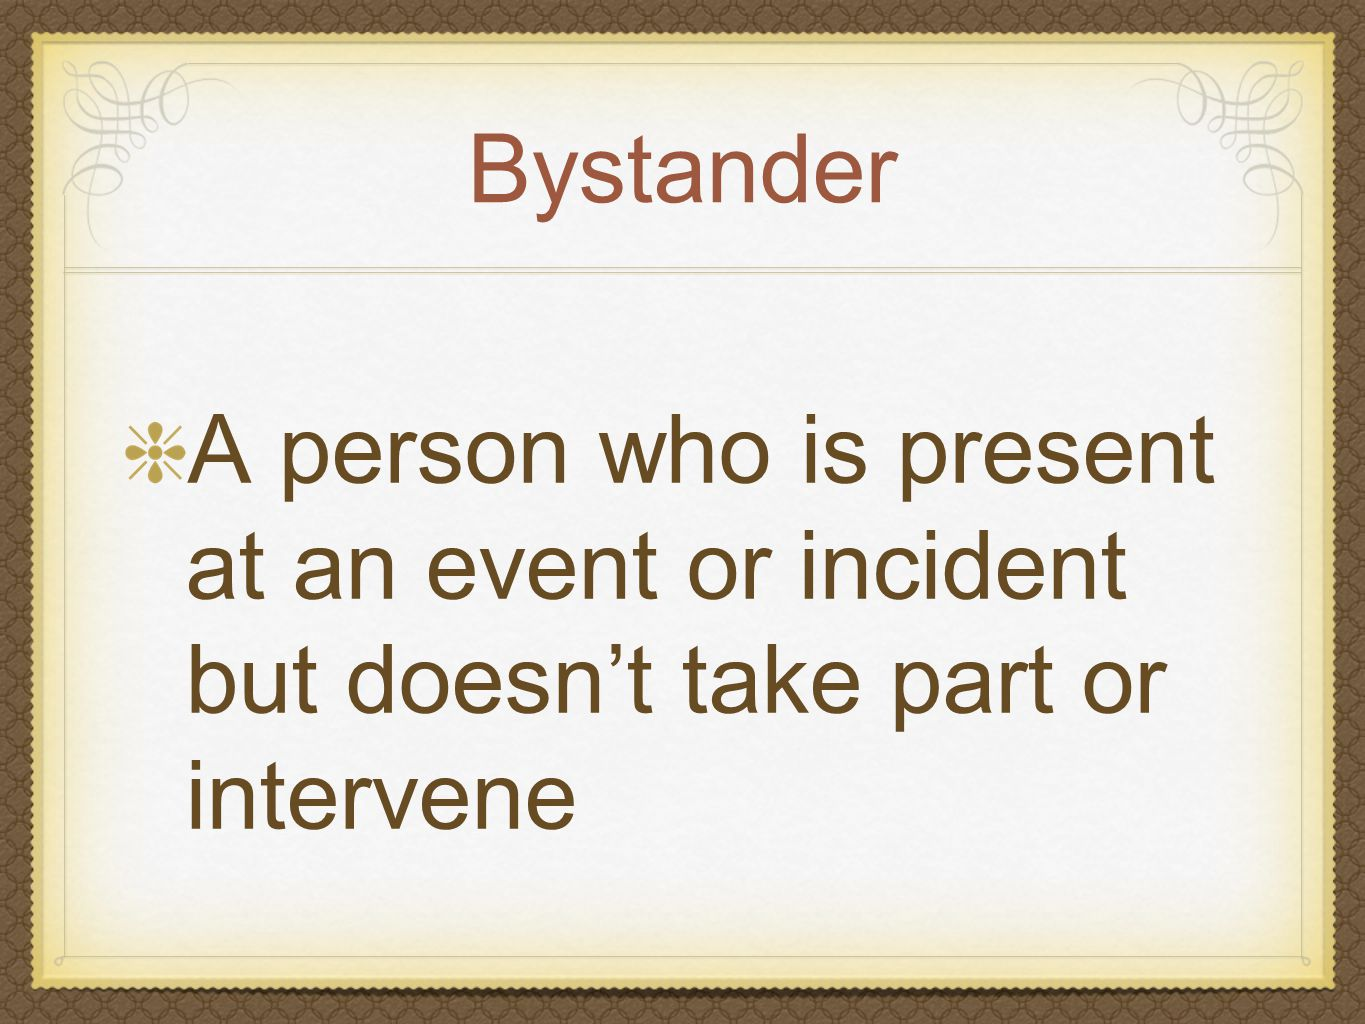 Bystander A person who is present at an event or incident but doesn't take part or intervene